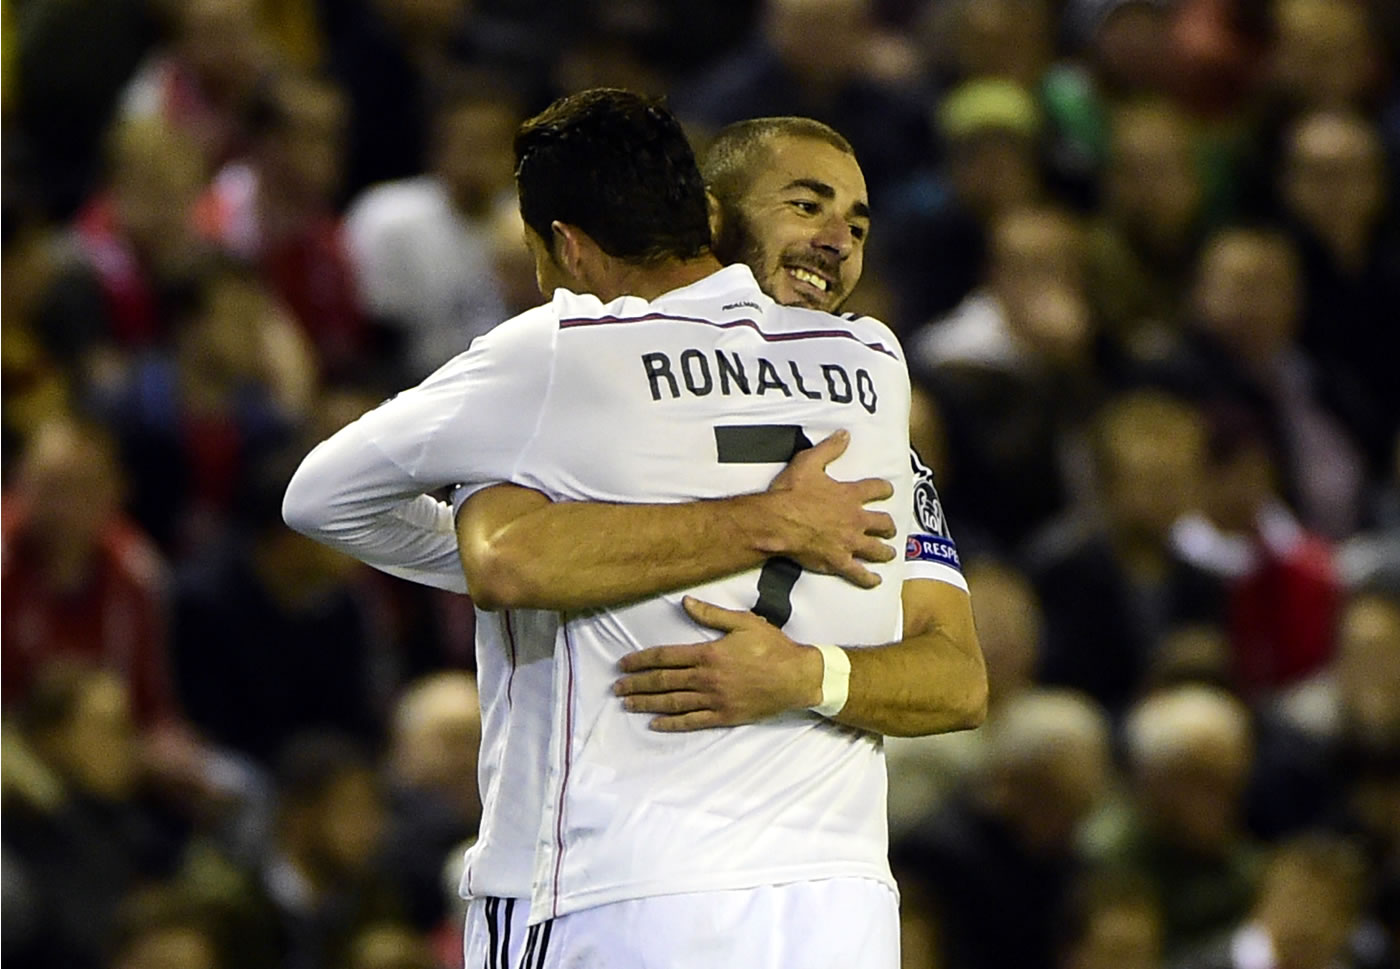 Liverpool 0-3 Real Madrid (Champions League)